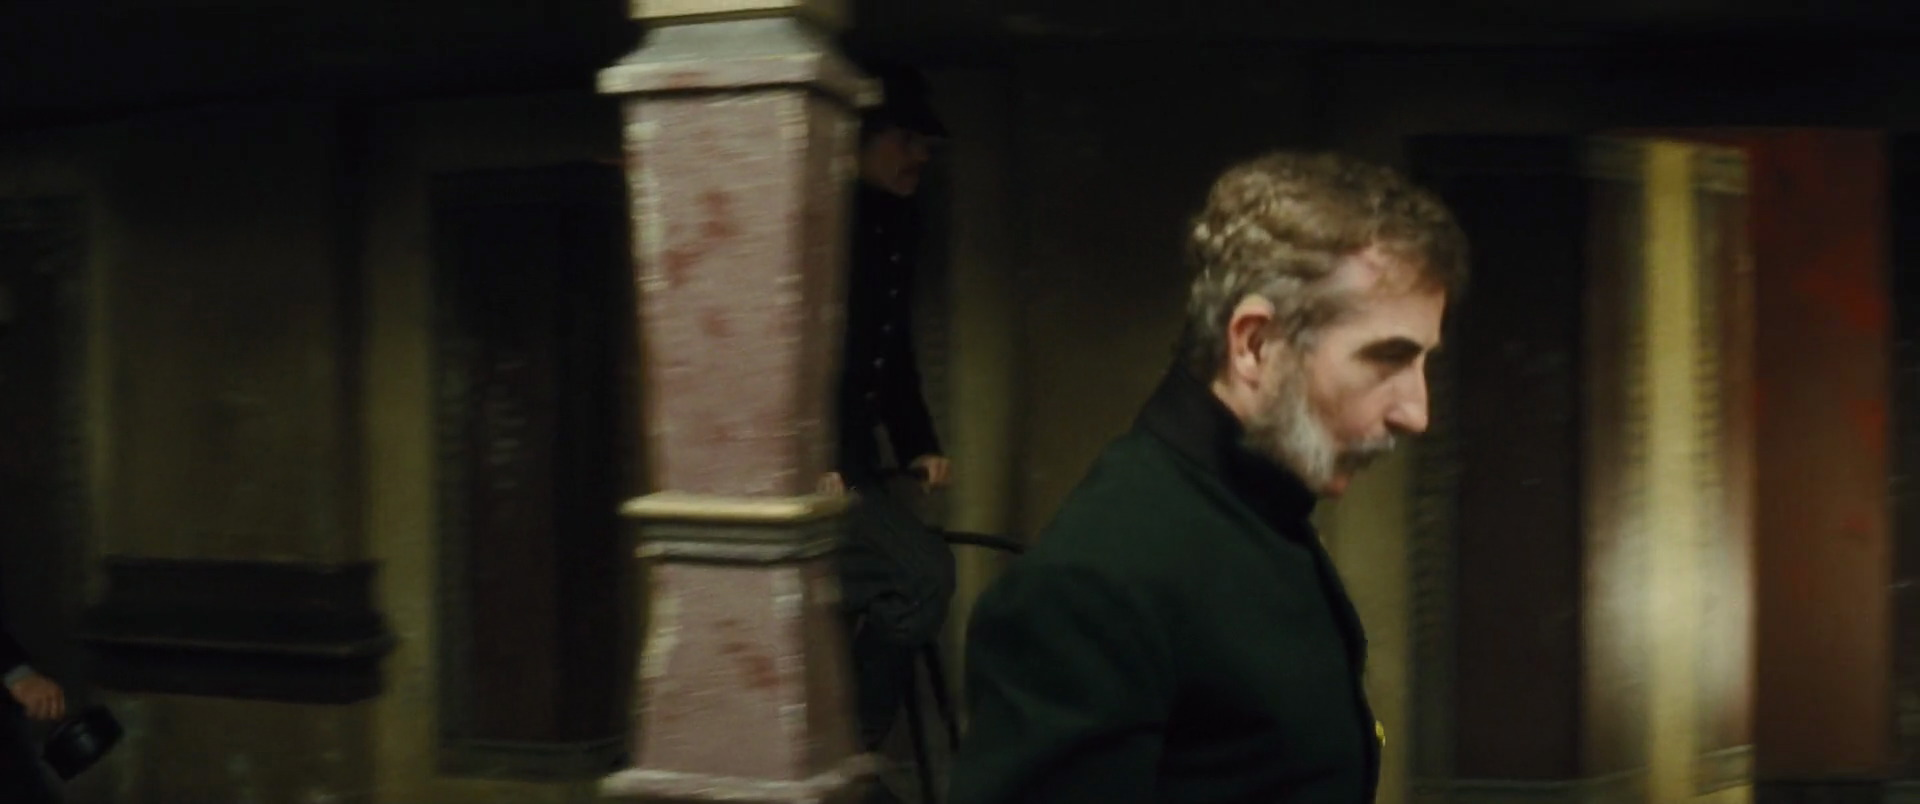 http://www.caps.media/201/2-anna-kareina/full/anna-karenina-movie-screencaps.com-930.jpg